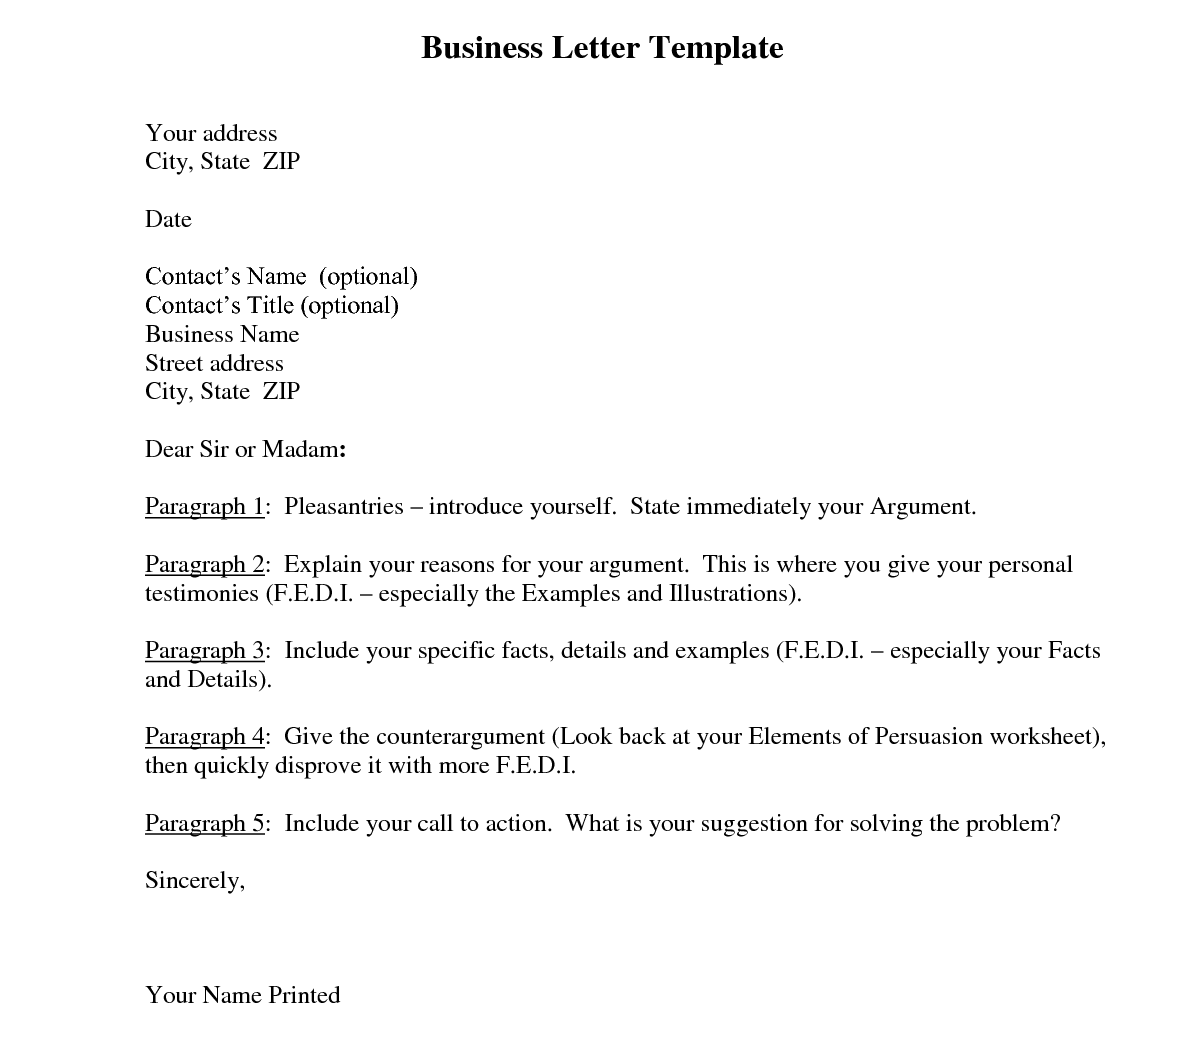 format for business letter business letter template and their benefits 1764